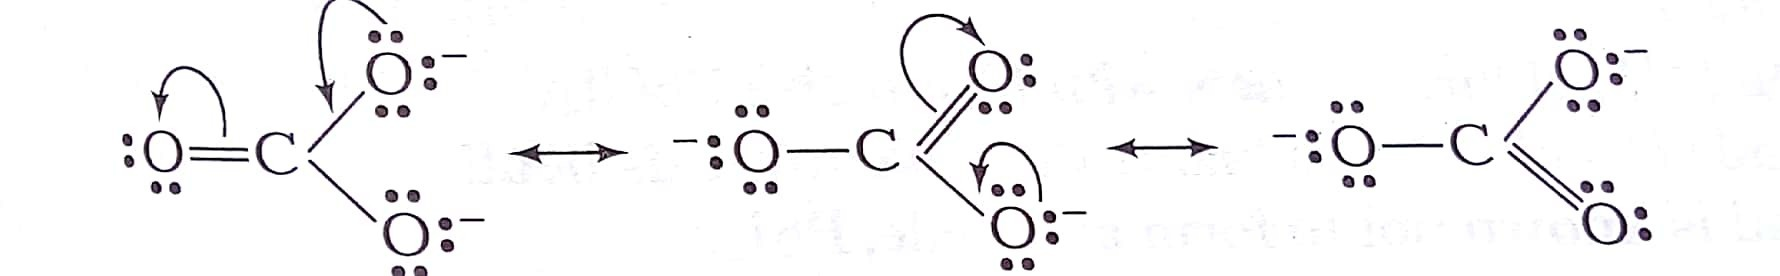 Draw The Resonating Structure Of O3 And Co3